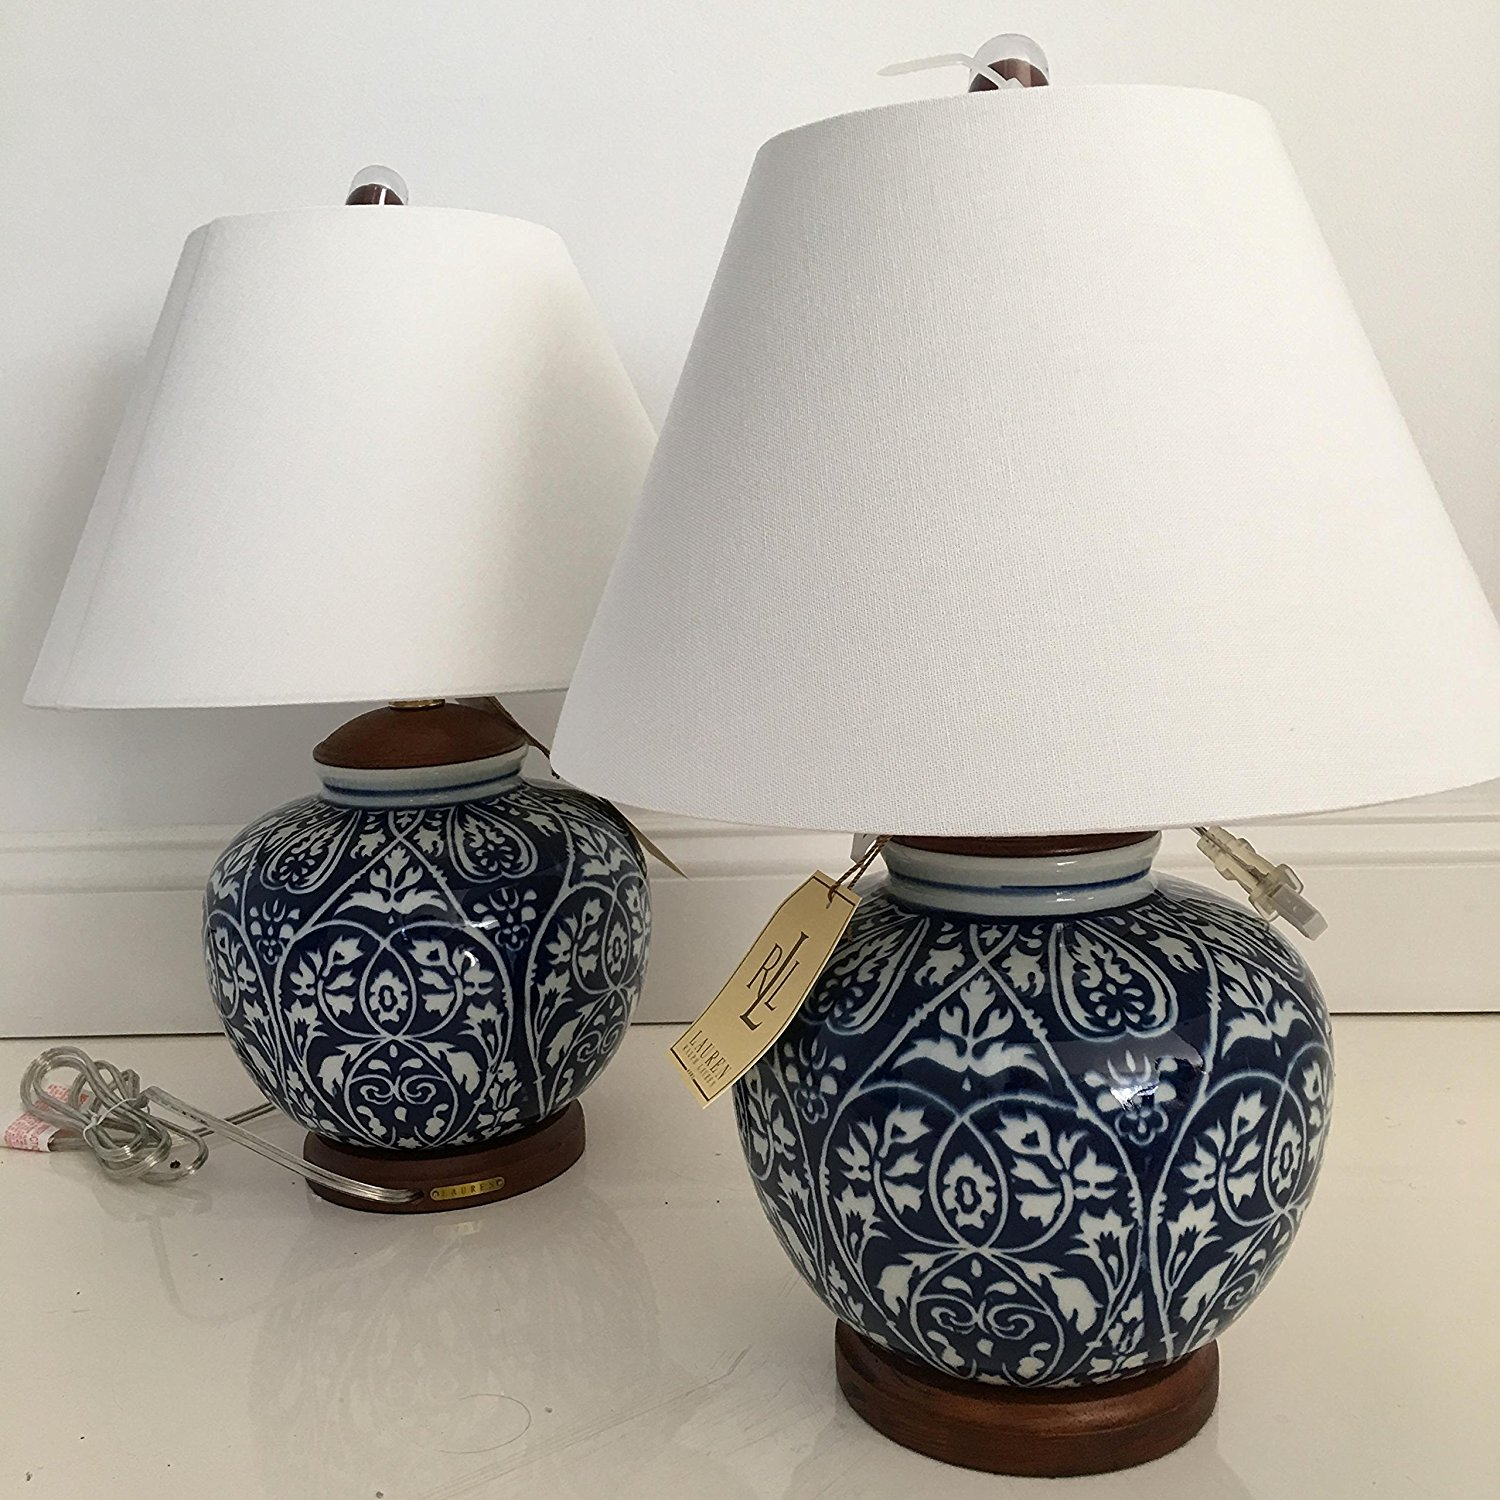 lamp hd jar lamps awesome of ginger luxury off decor table white wallpaper